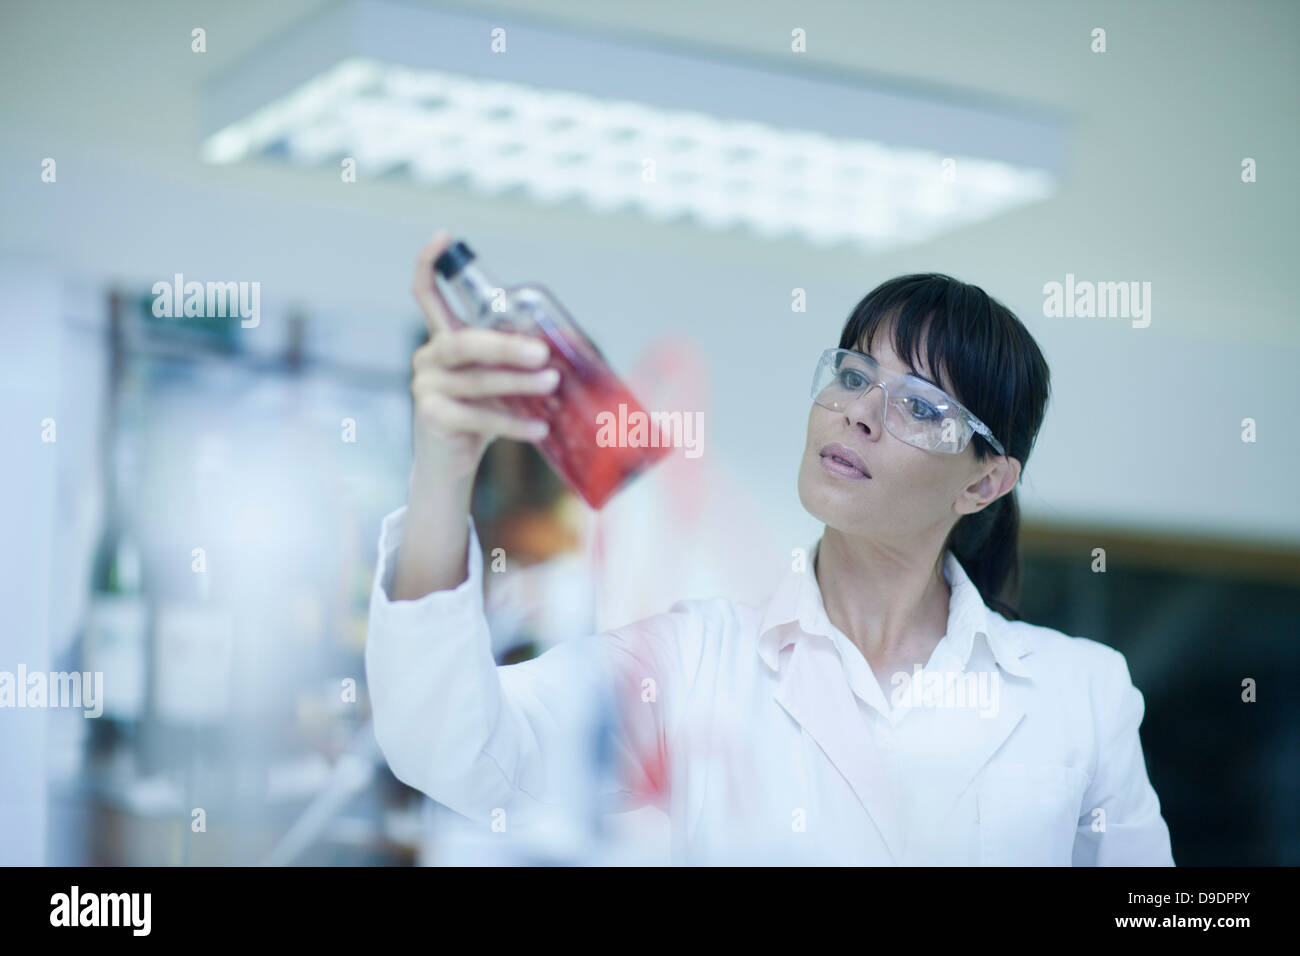 Oenologist monitoring sample testing in laboratory Stock